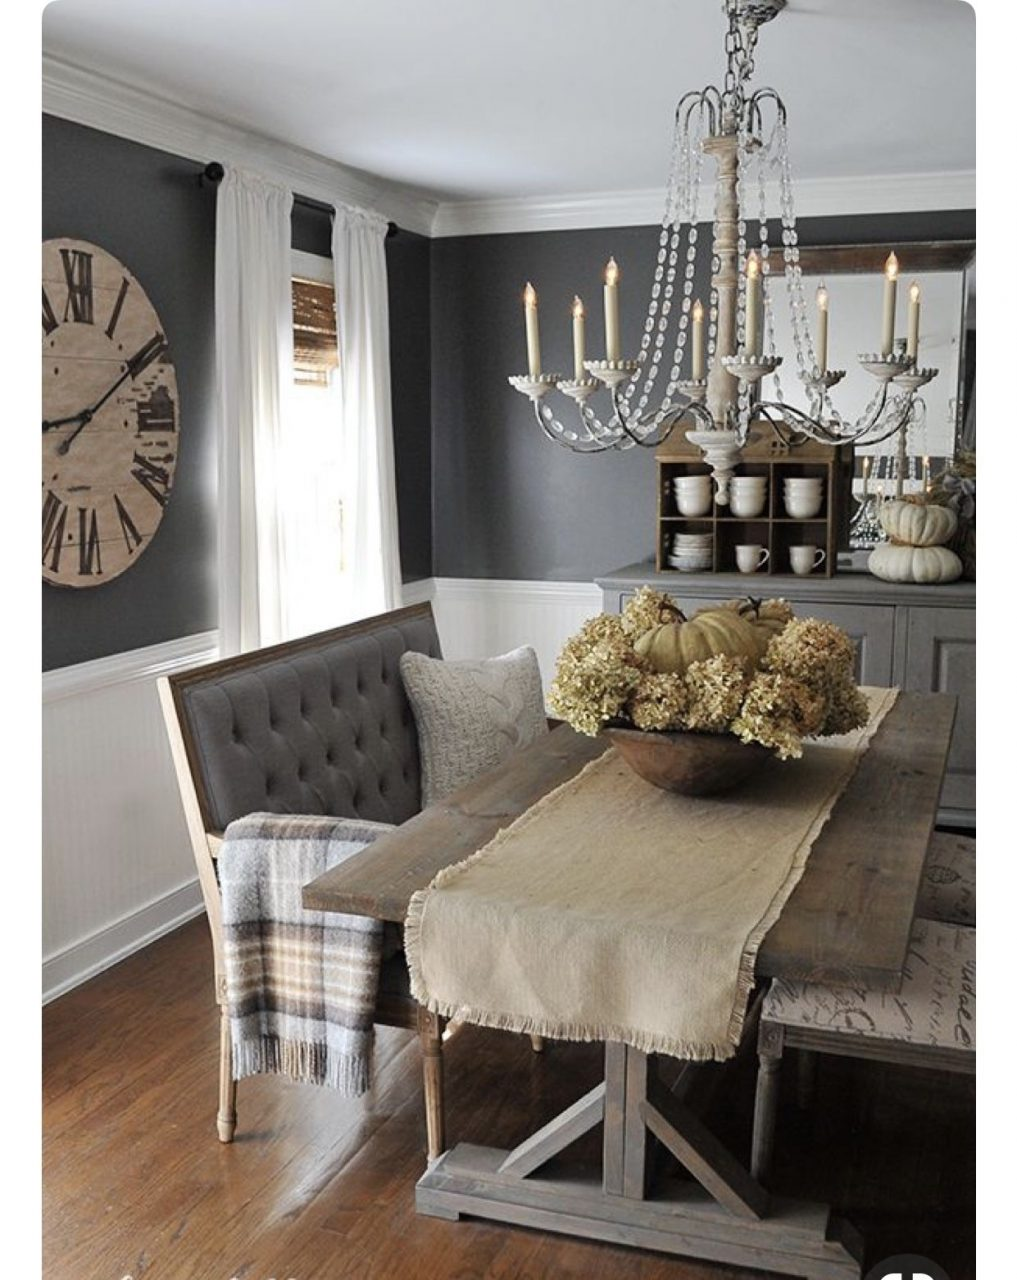 Rustic Glam Dining Future House Paint Ideas Dining Room Dining